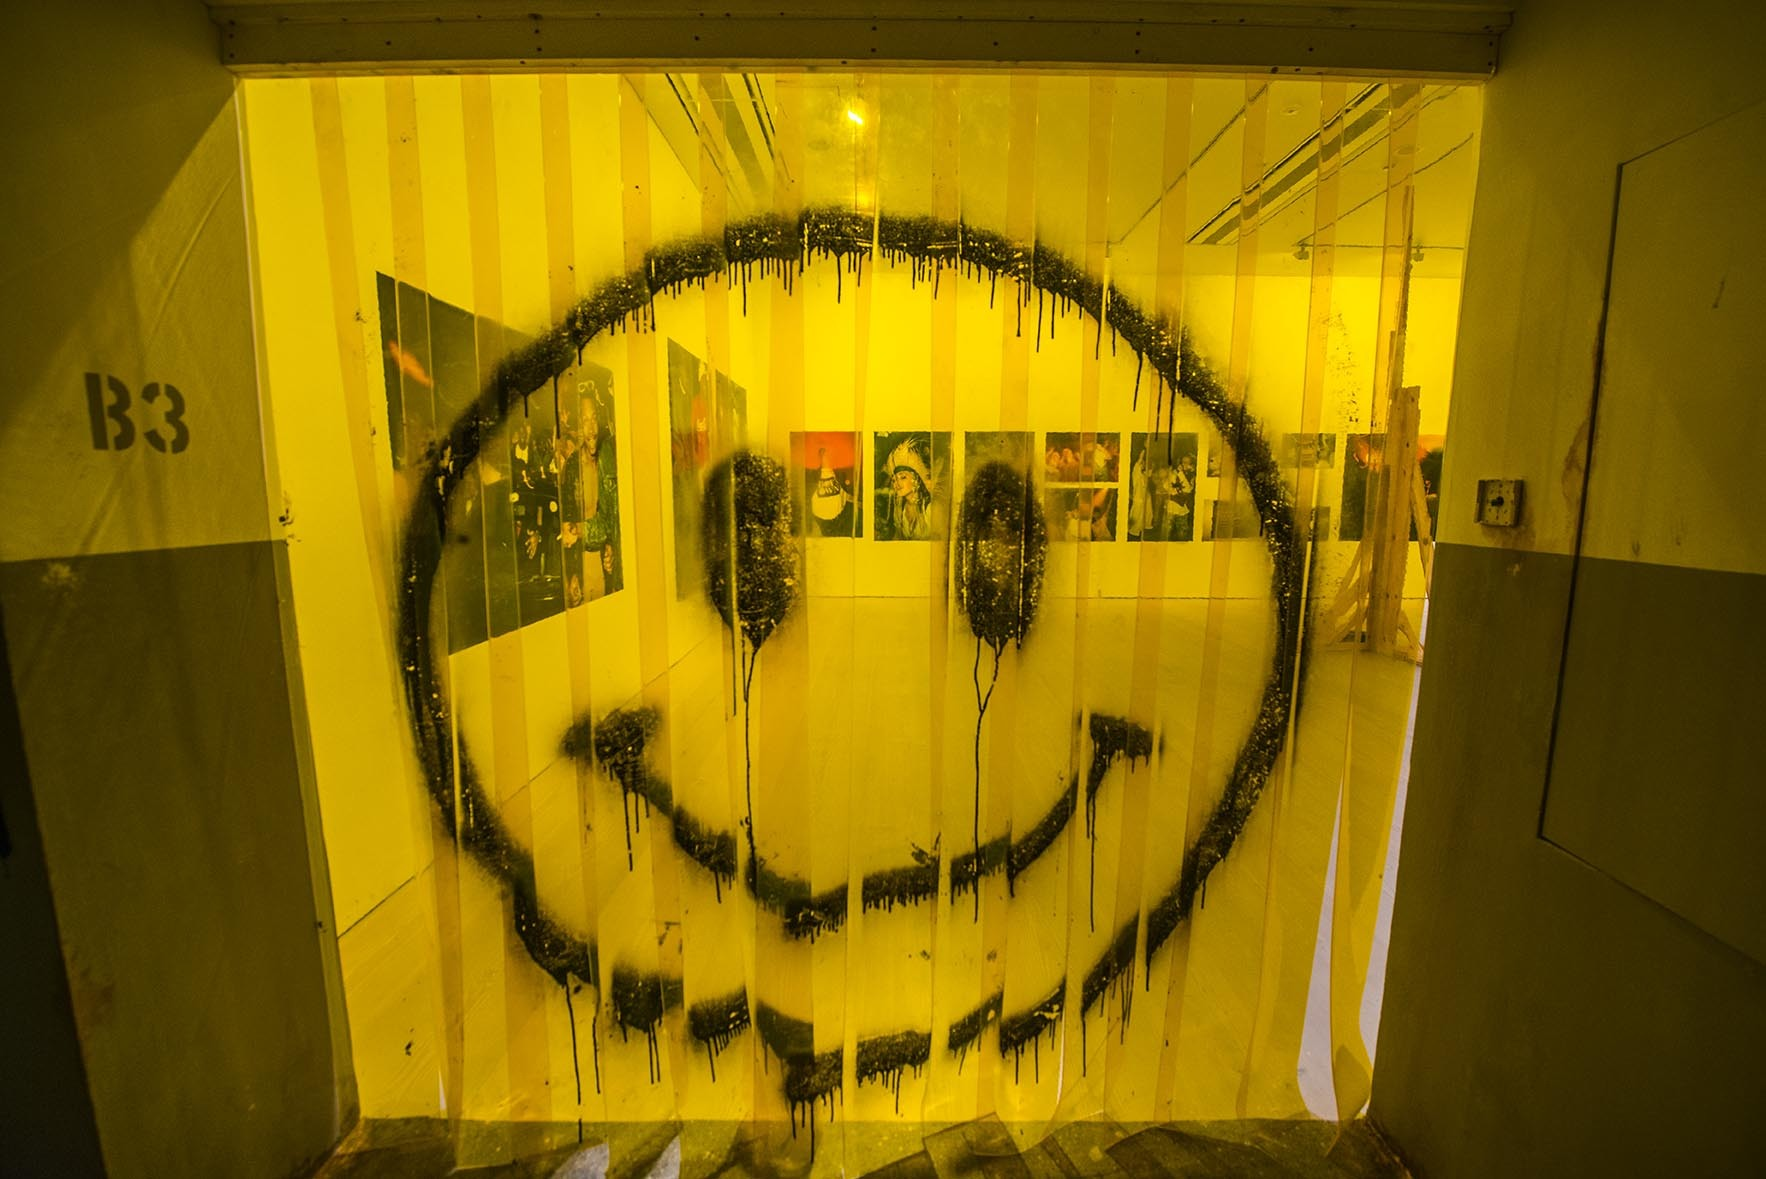 Saatchi gallery yellow curtain smiley face art